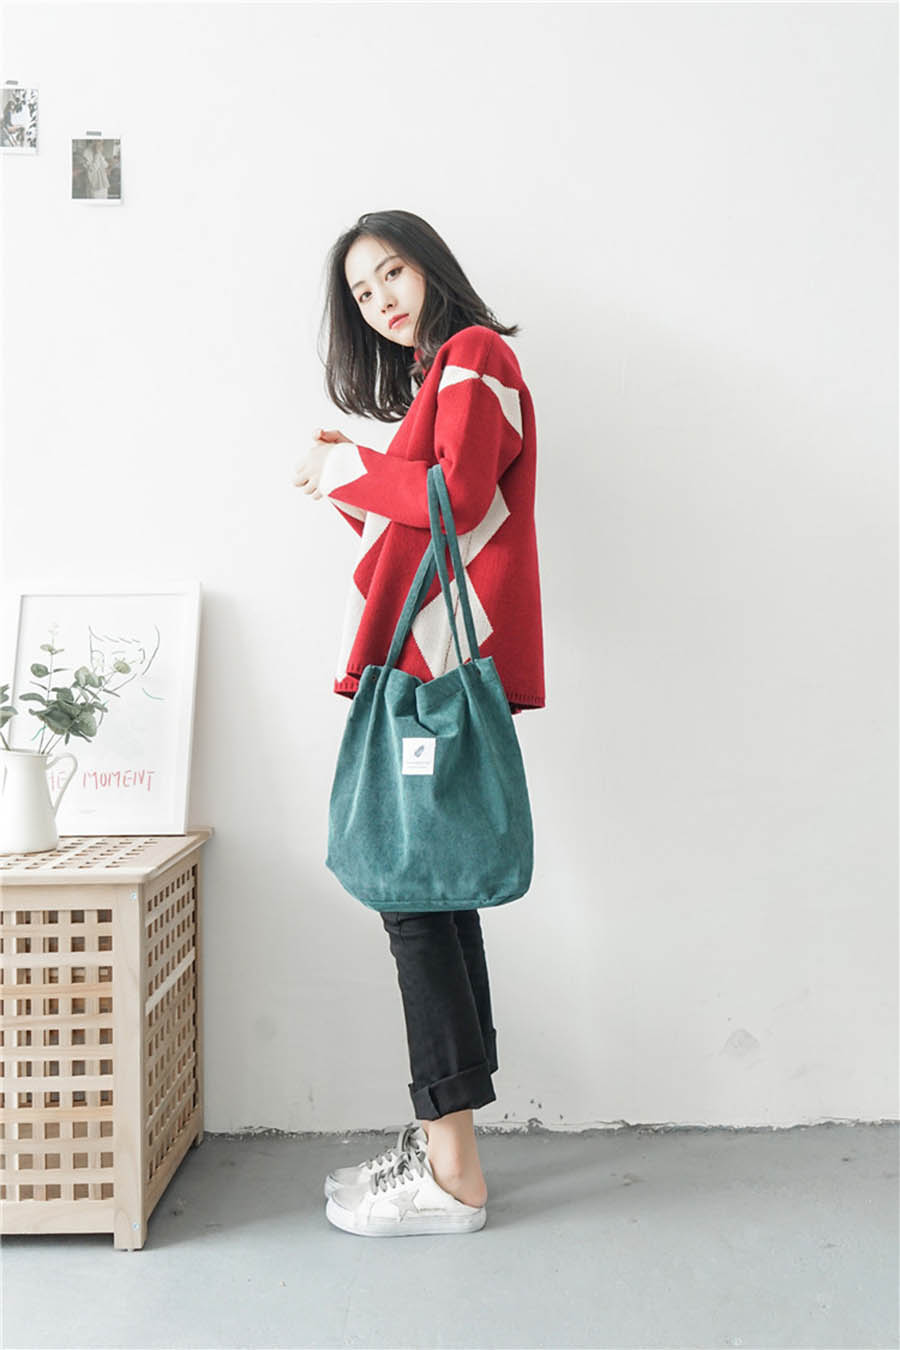 Mara's Dream High Capacity Women Corduroy Tote Ladies Casual Solid Color Shoulder Bag Foldable Reusable Women Shopping Beach Bag 21